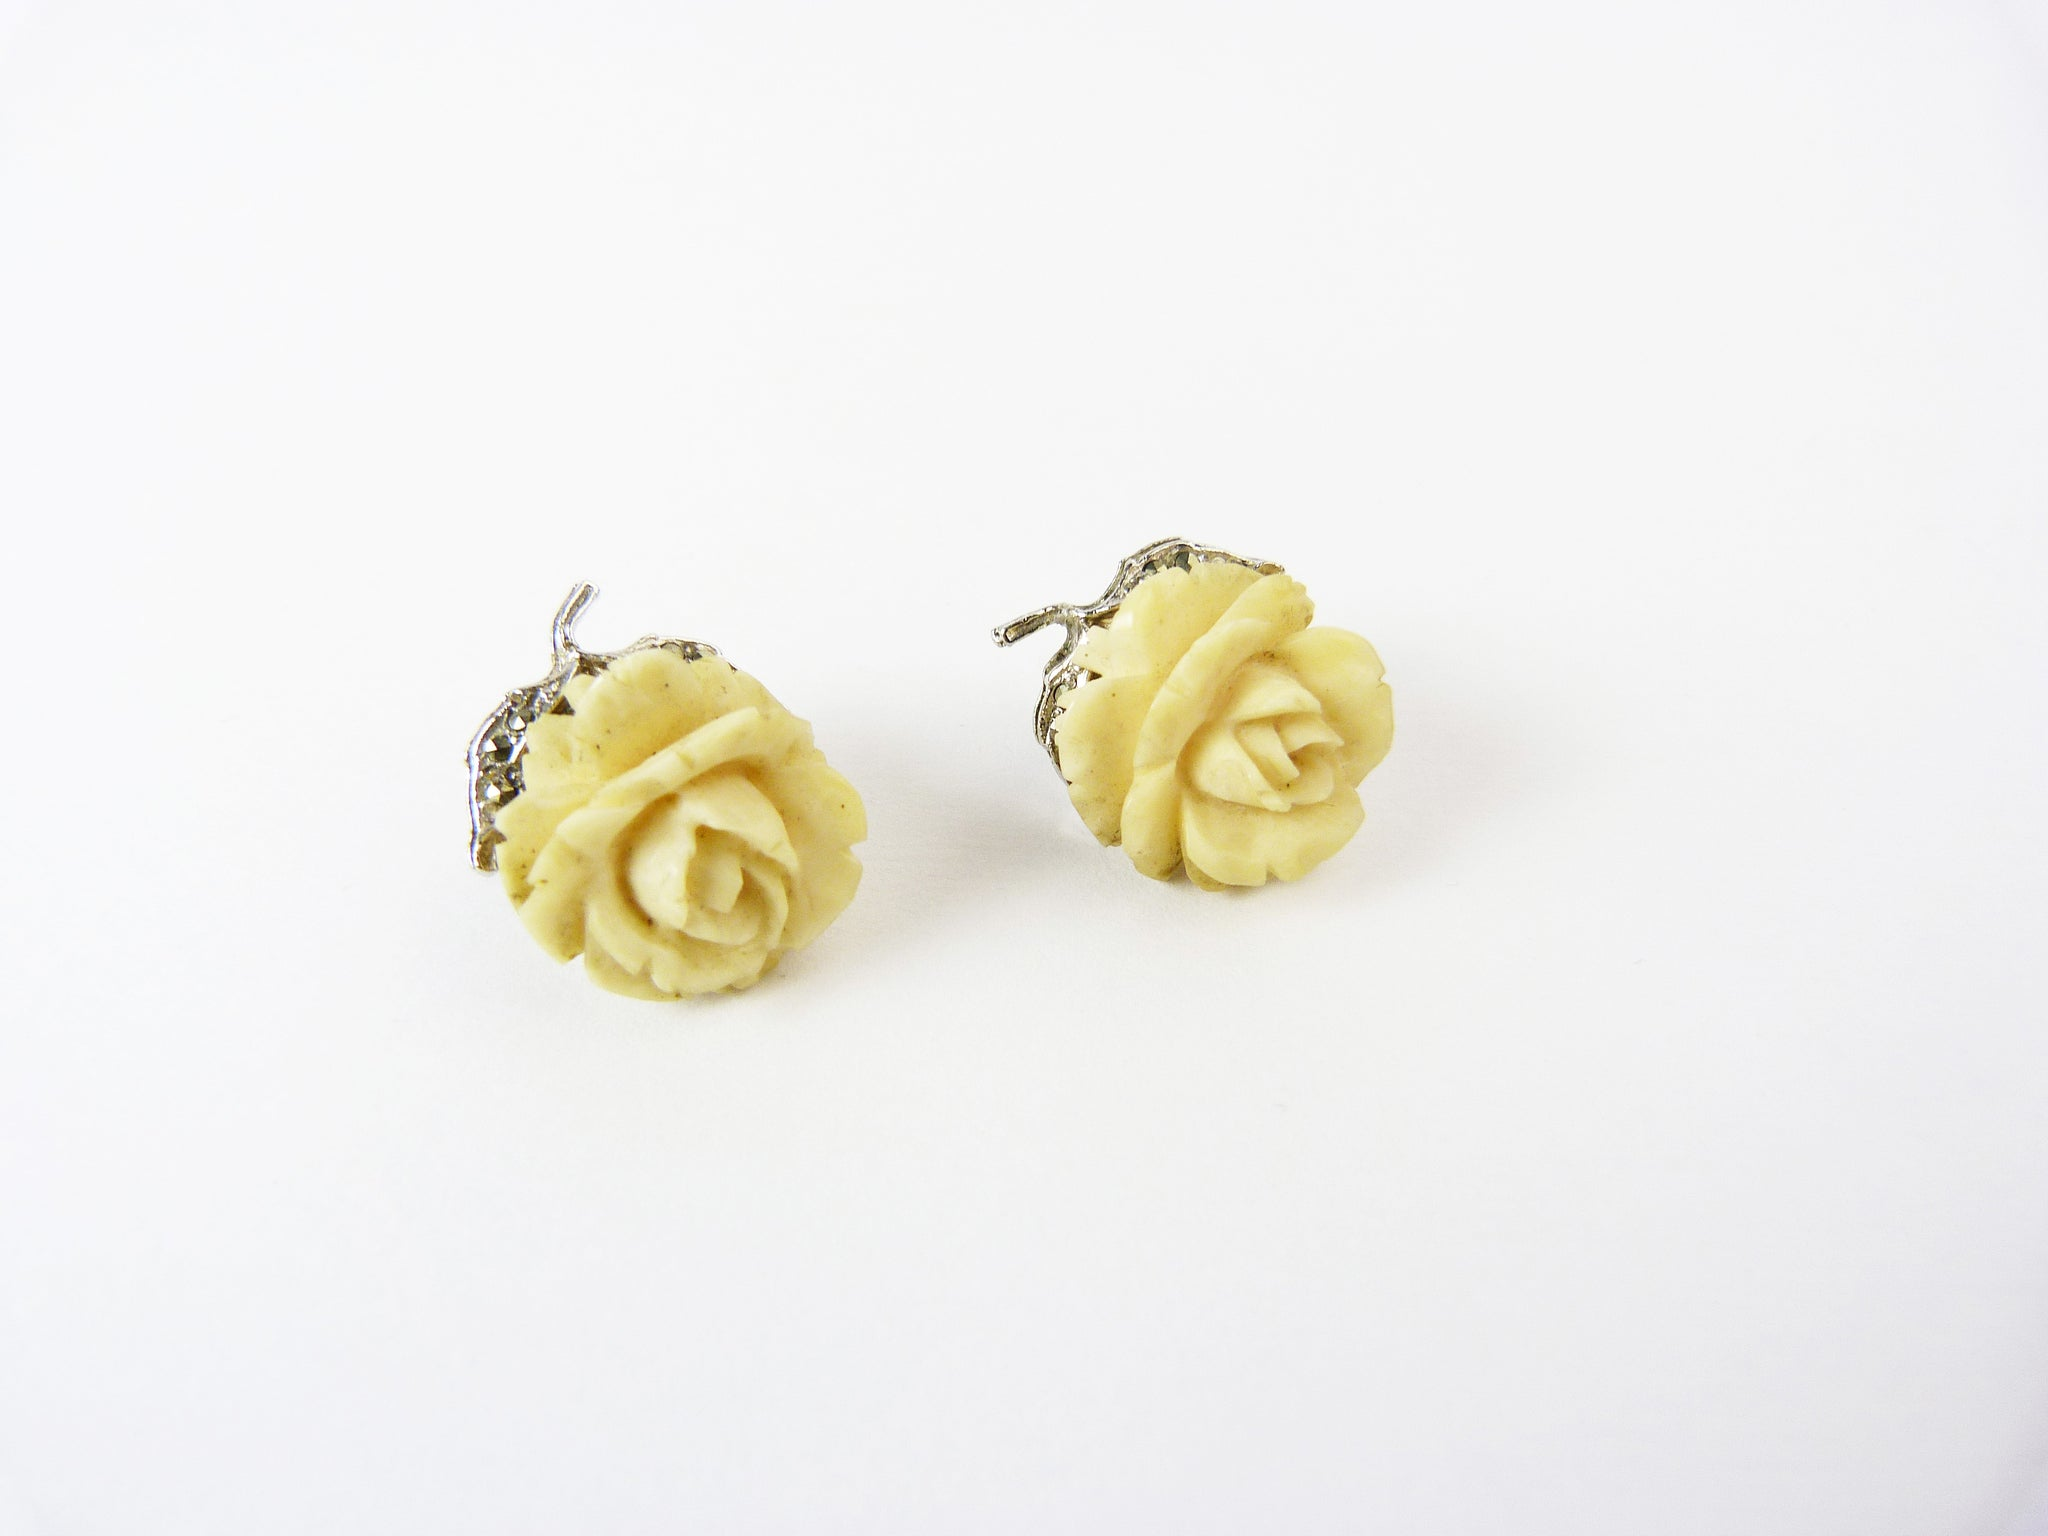 Vintage Art Deco Hand Carved Bone Rose & Marcasite Clip On Earrings